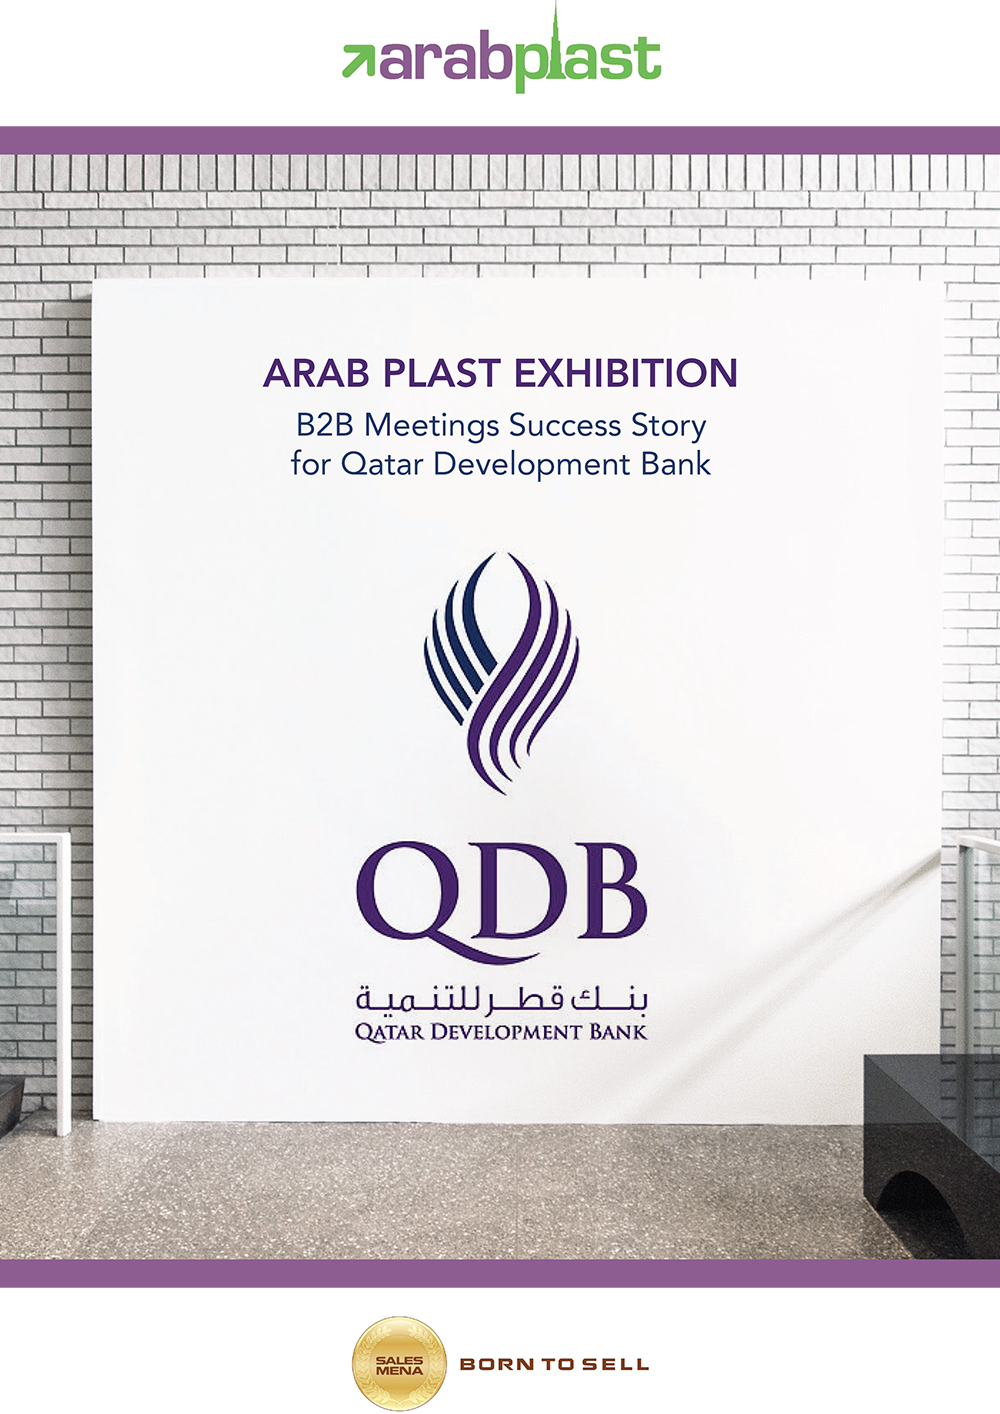 Arab Plast Exhibition